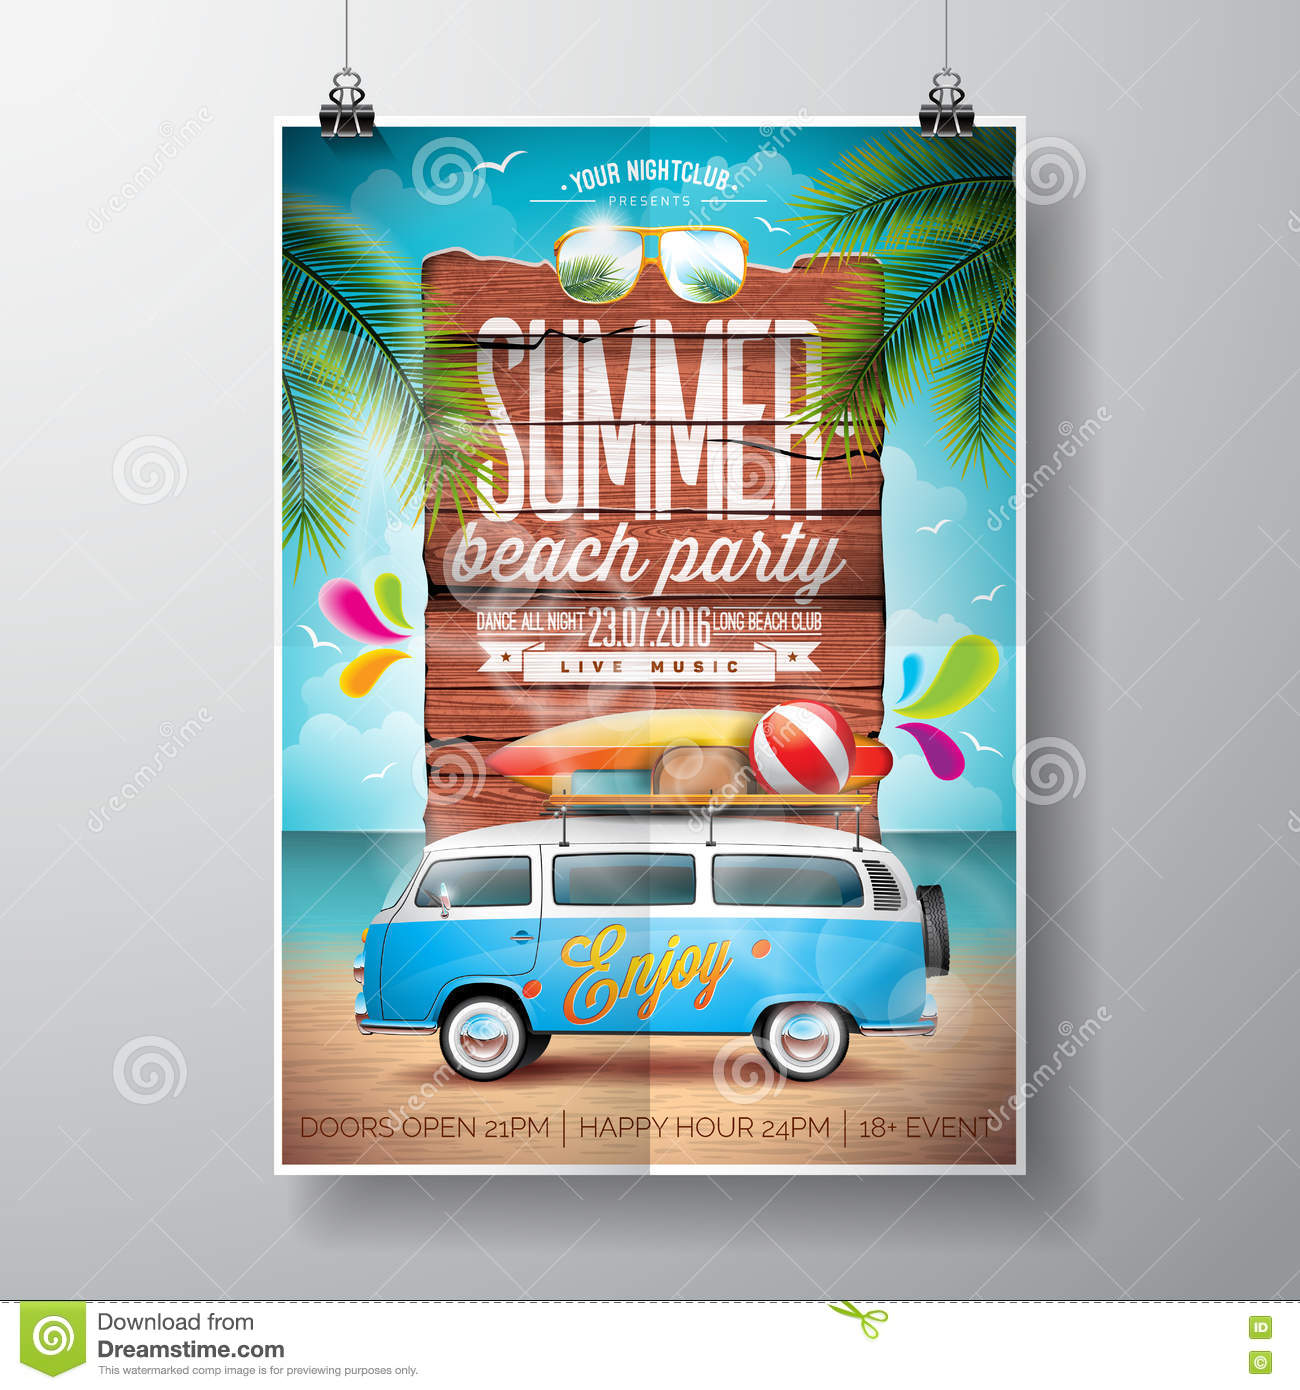 Vector Summer Beach Party Flyer Design With Travel Van And Surf Board On Ocean Landscape Background